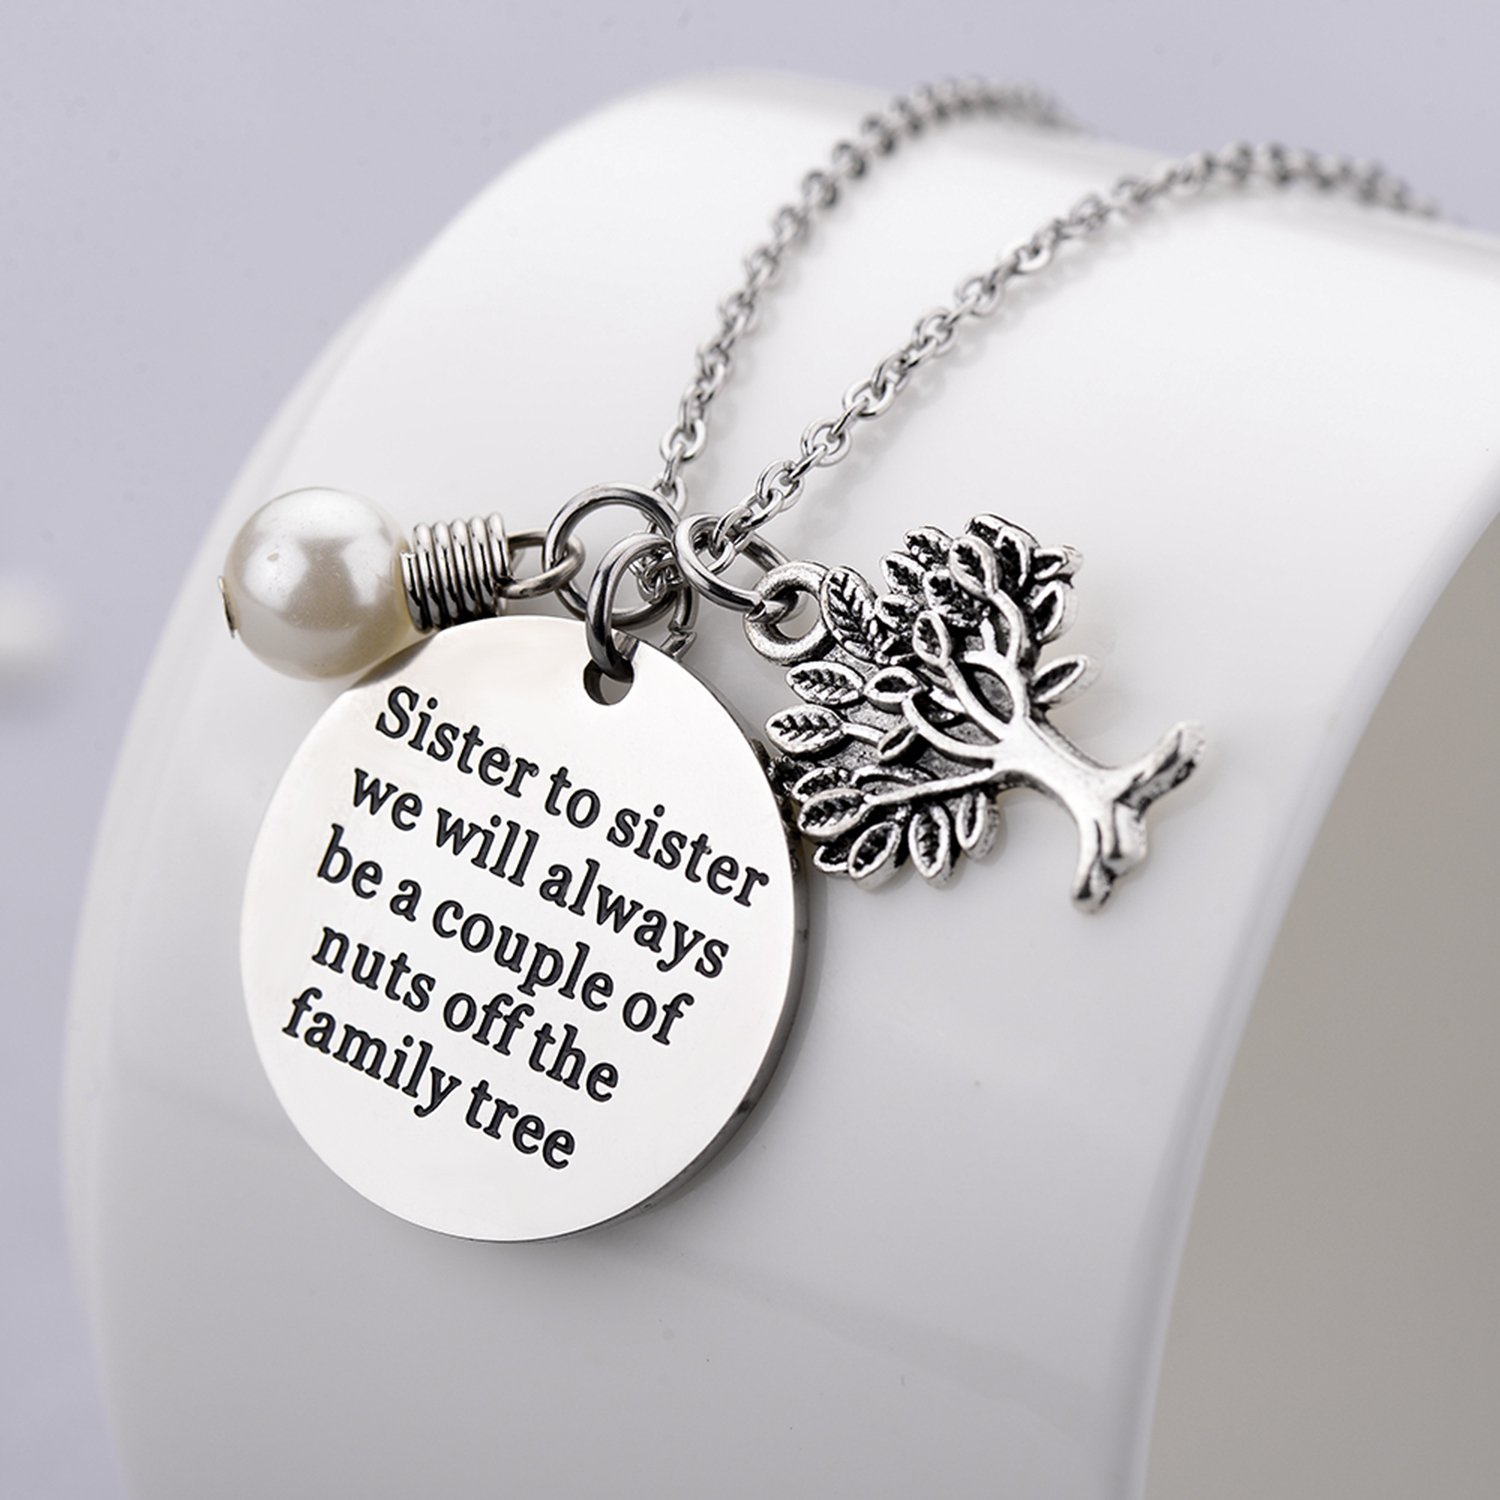 designs sterling necklace pendant necklaces image silver tree products custom collections contagious birthstone family